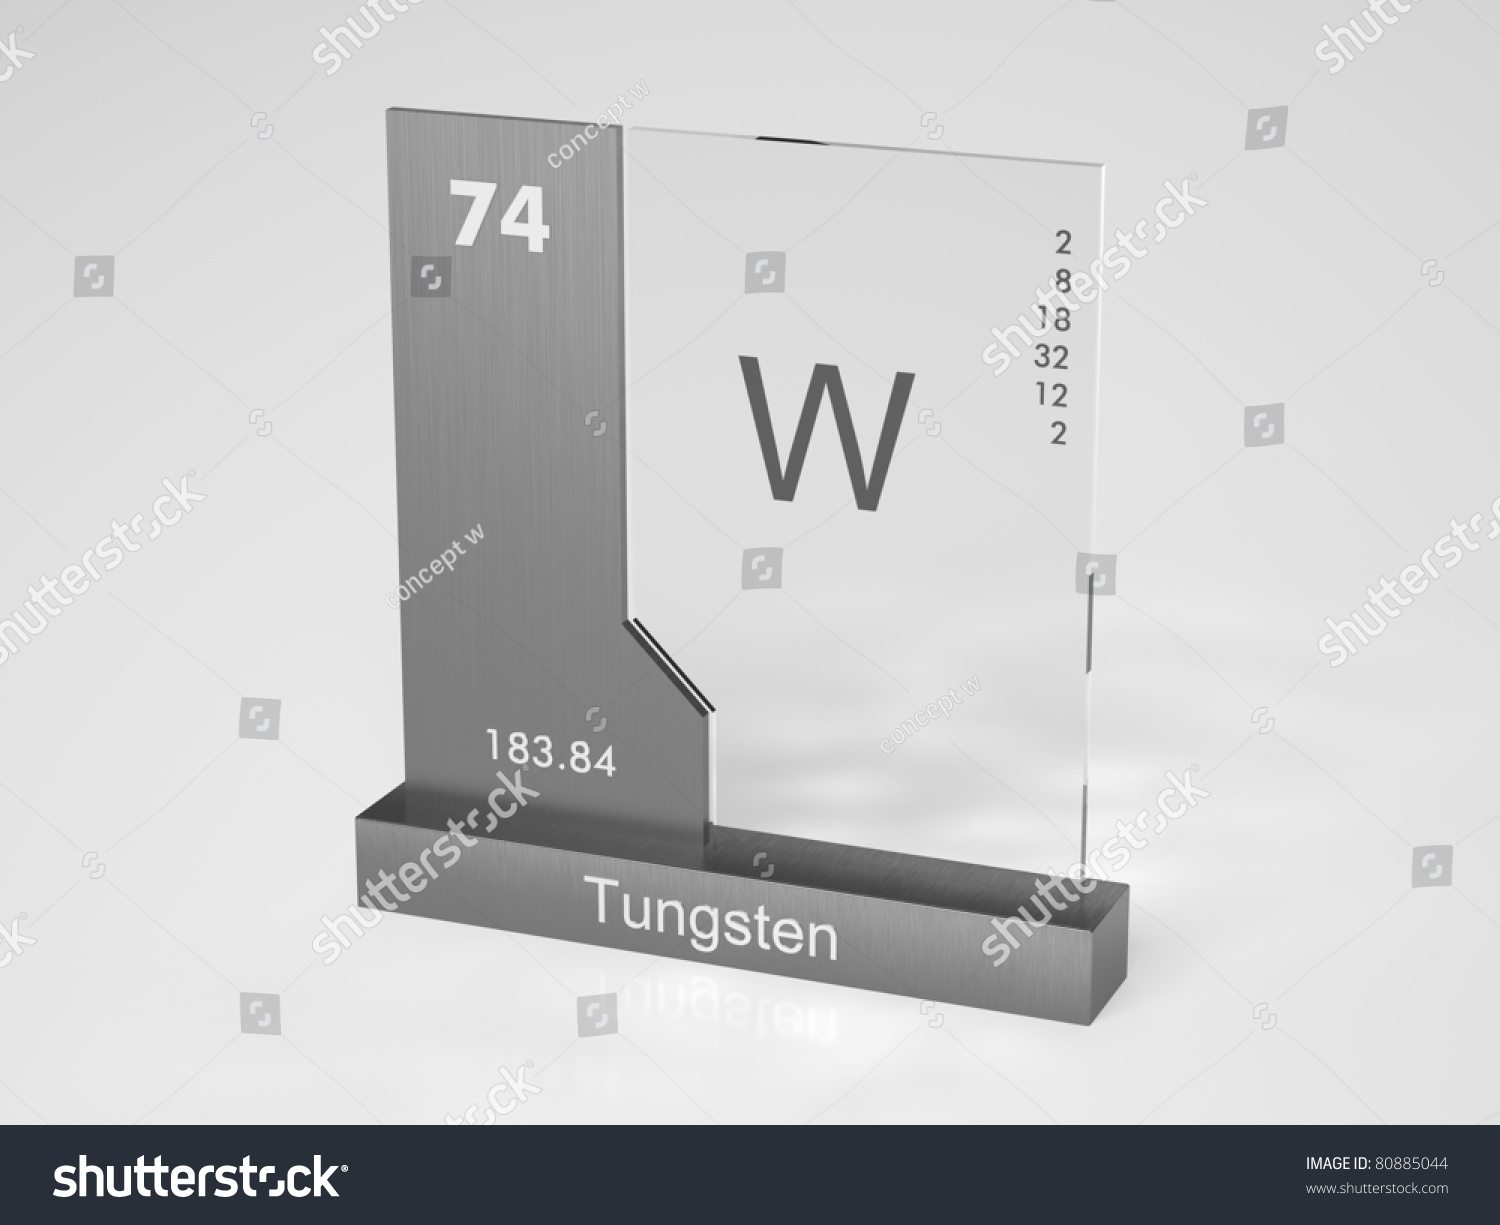 Tungsten symbol w wolfram chemical element stock illustration tungsten symbol w wolfram chemical element of the periodic table urtaz Images